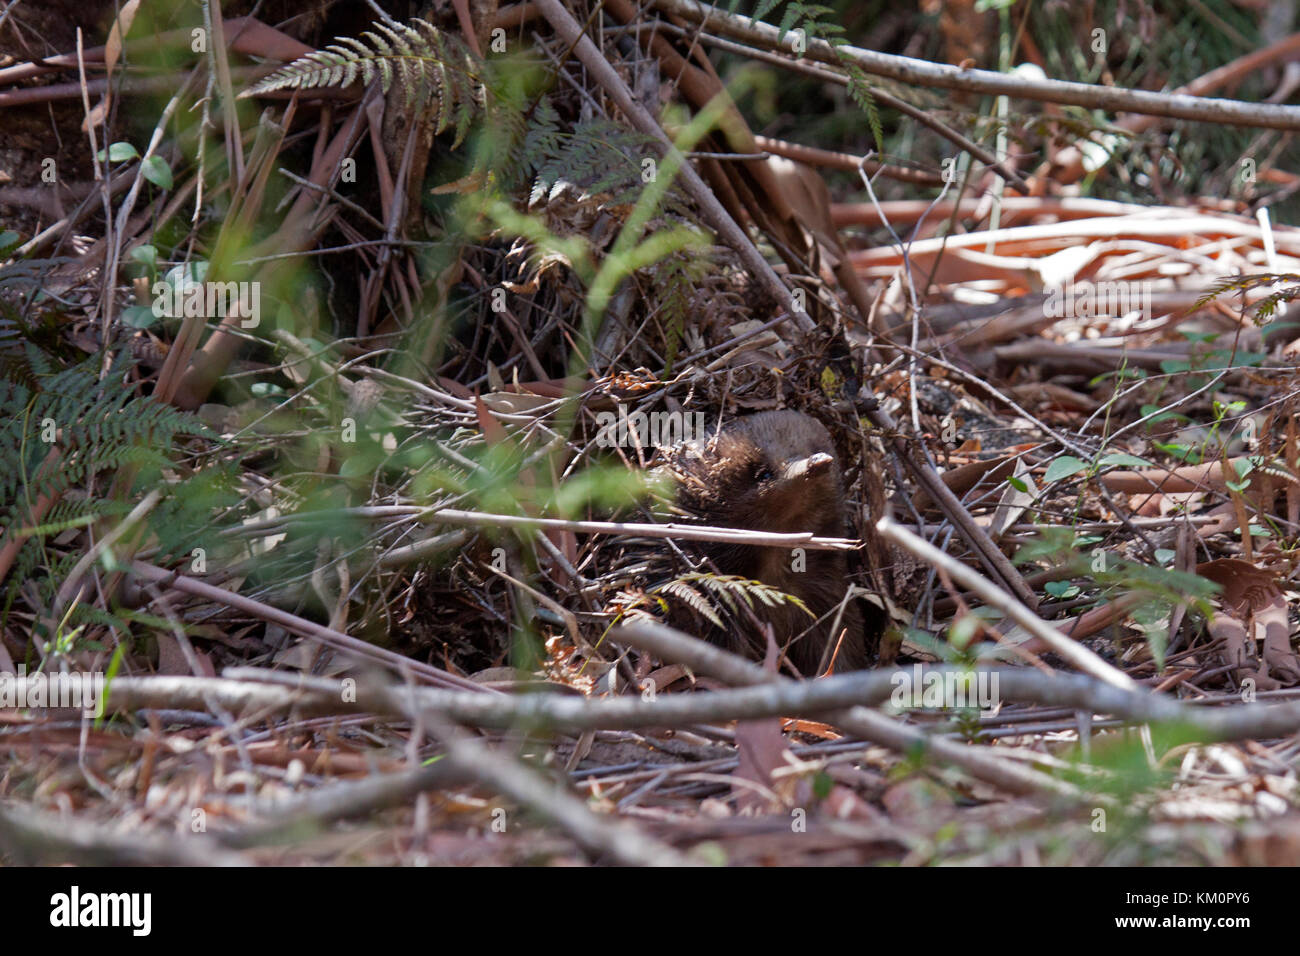 Short beaked echidna emerging from concealment under a pile of litter in daylight in NSW Australia - Stock Image